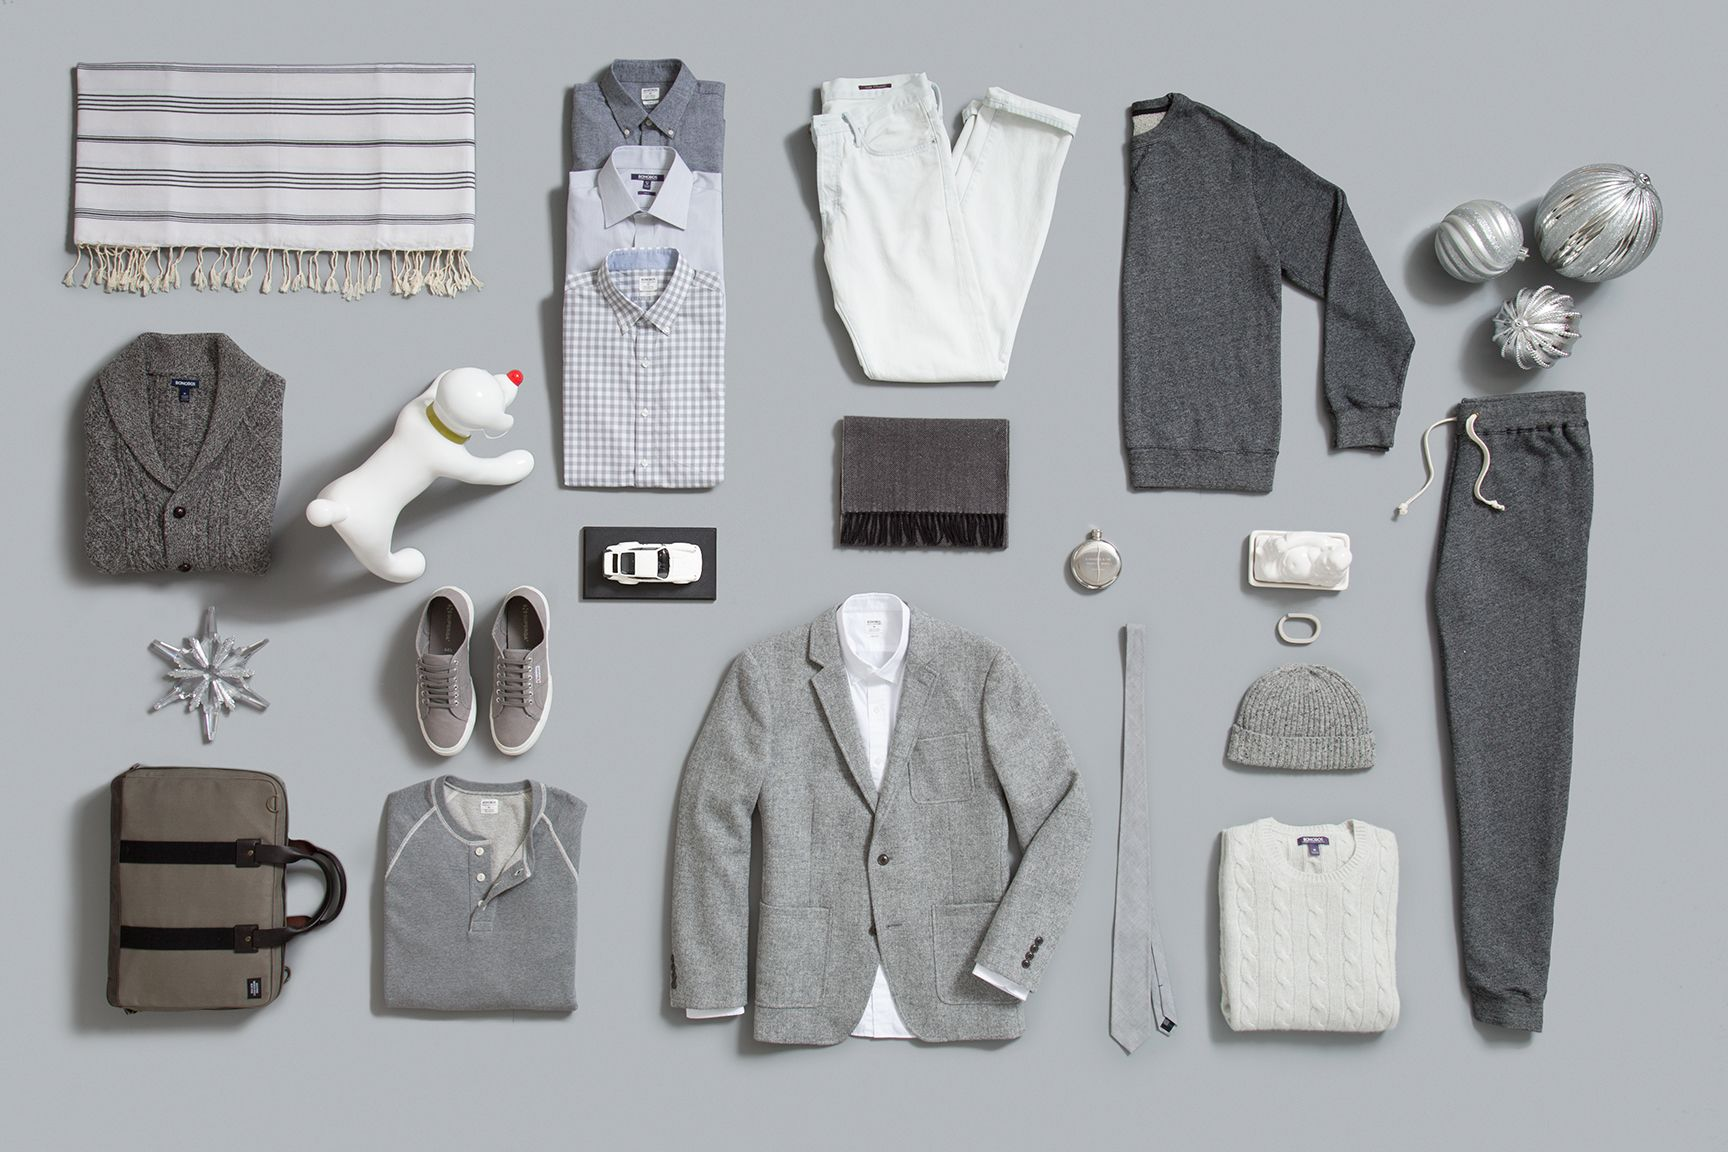 Great #gifts for the man who has almost everything. #holiday #giftsforguys